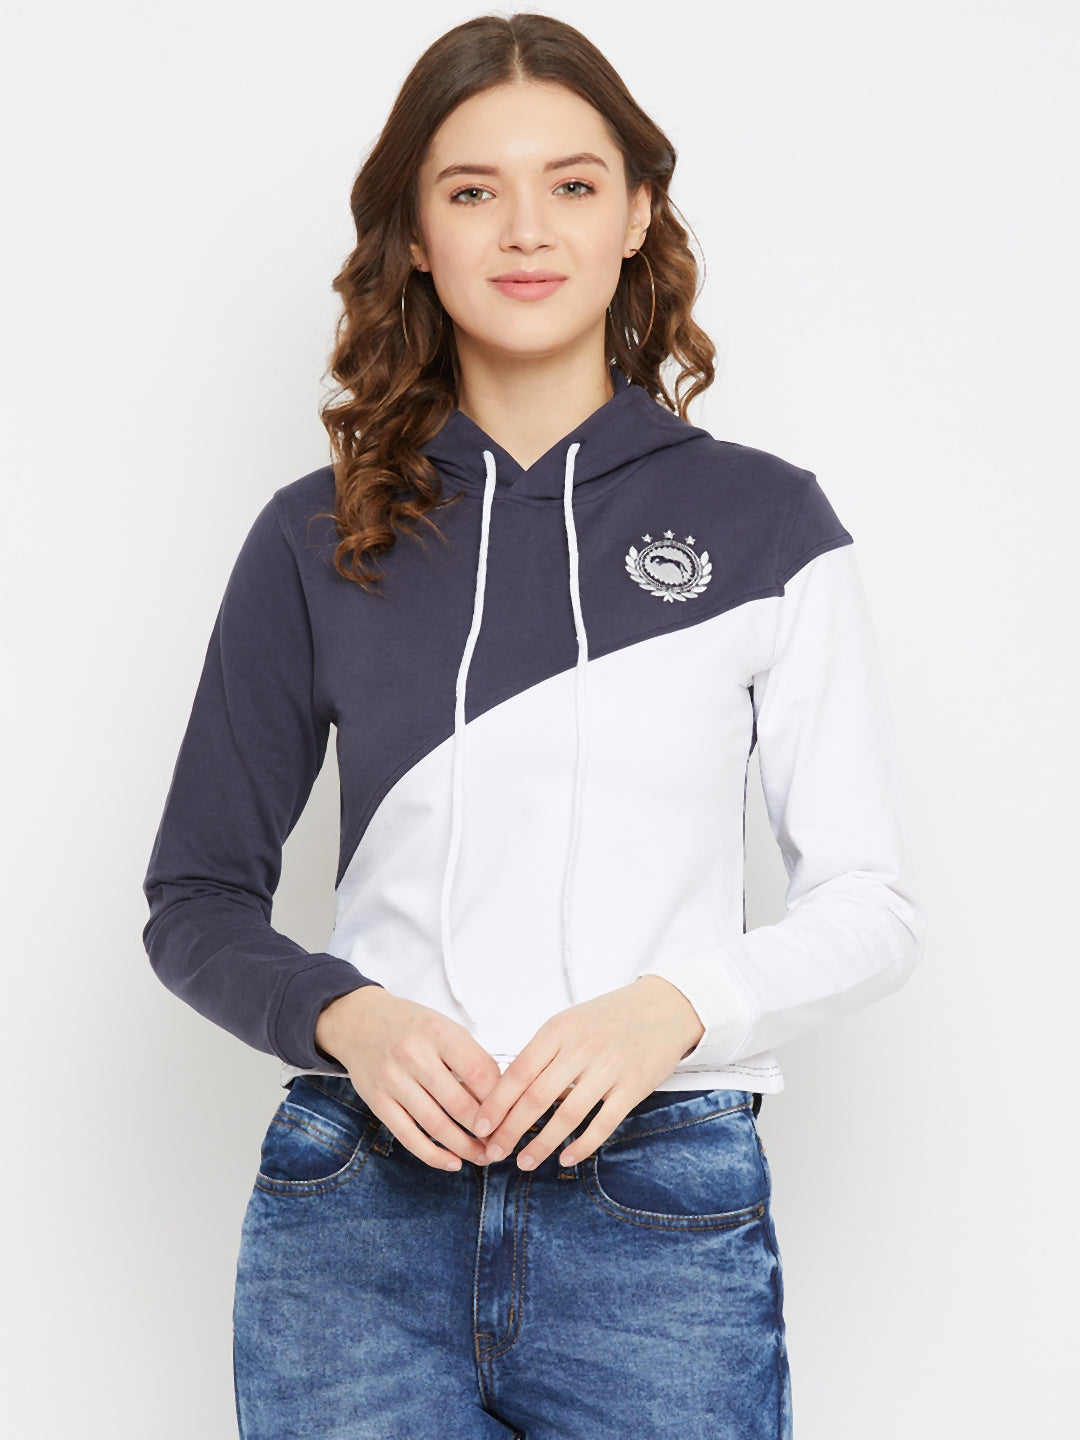 JUMP USA Women White Cotton Hooded Sweatshirt